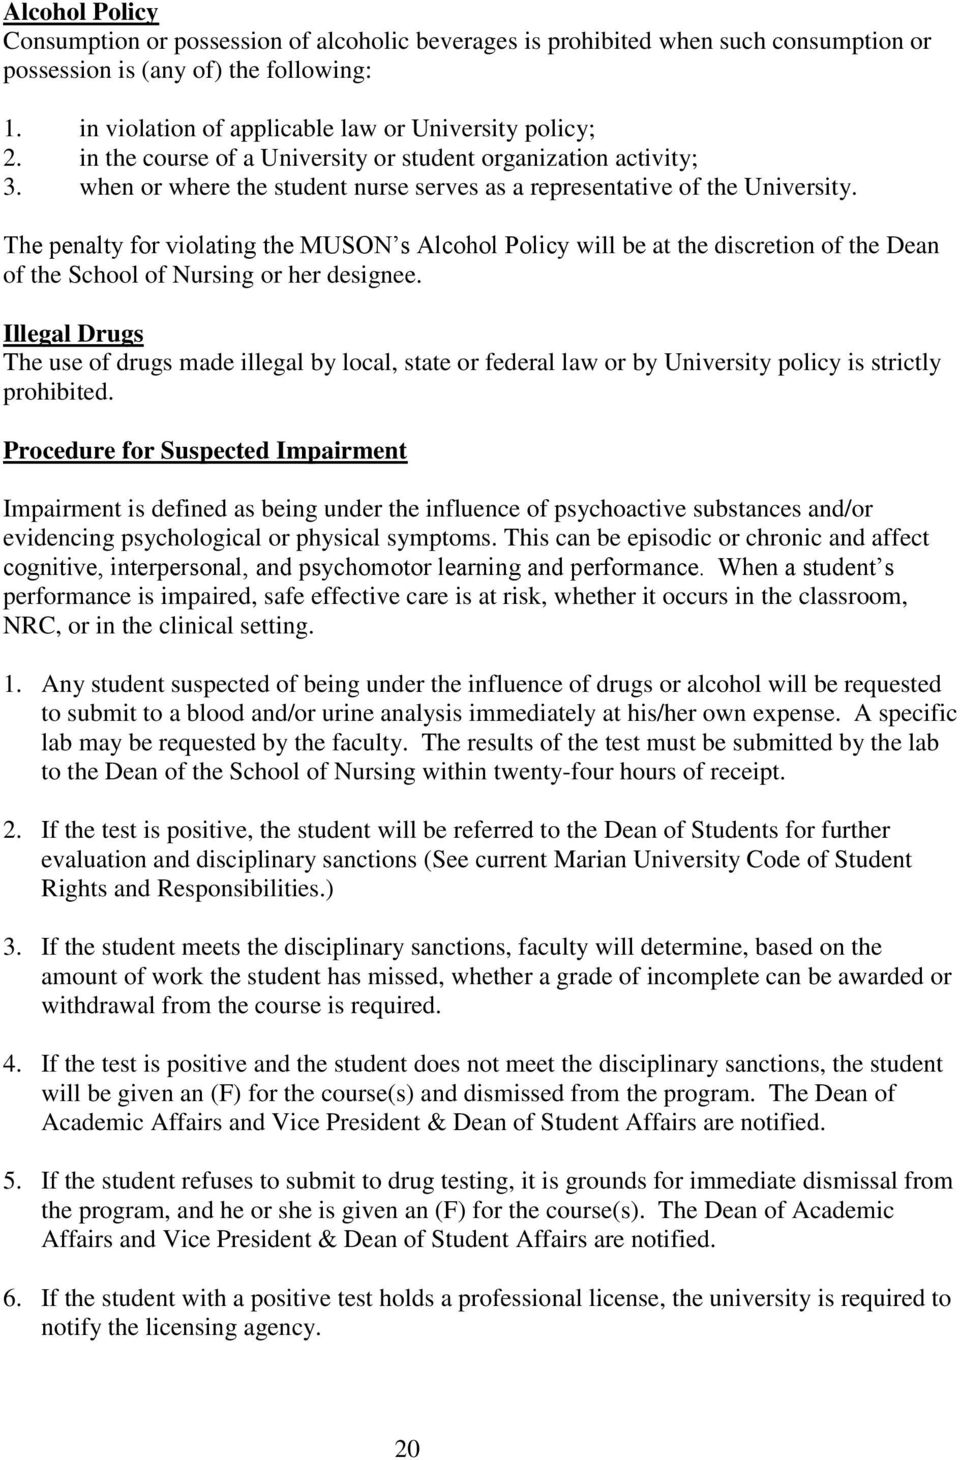 The penalty for violating the MUSON s Alcohol Policy will be at the discretion of the Dean of the School of Nursing or her designee.